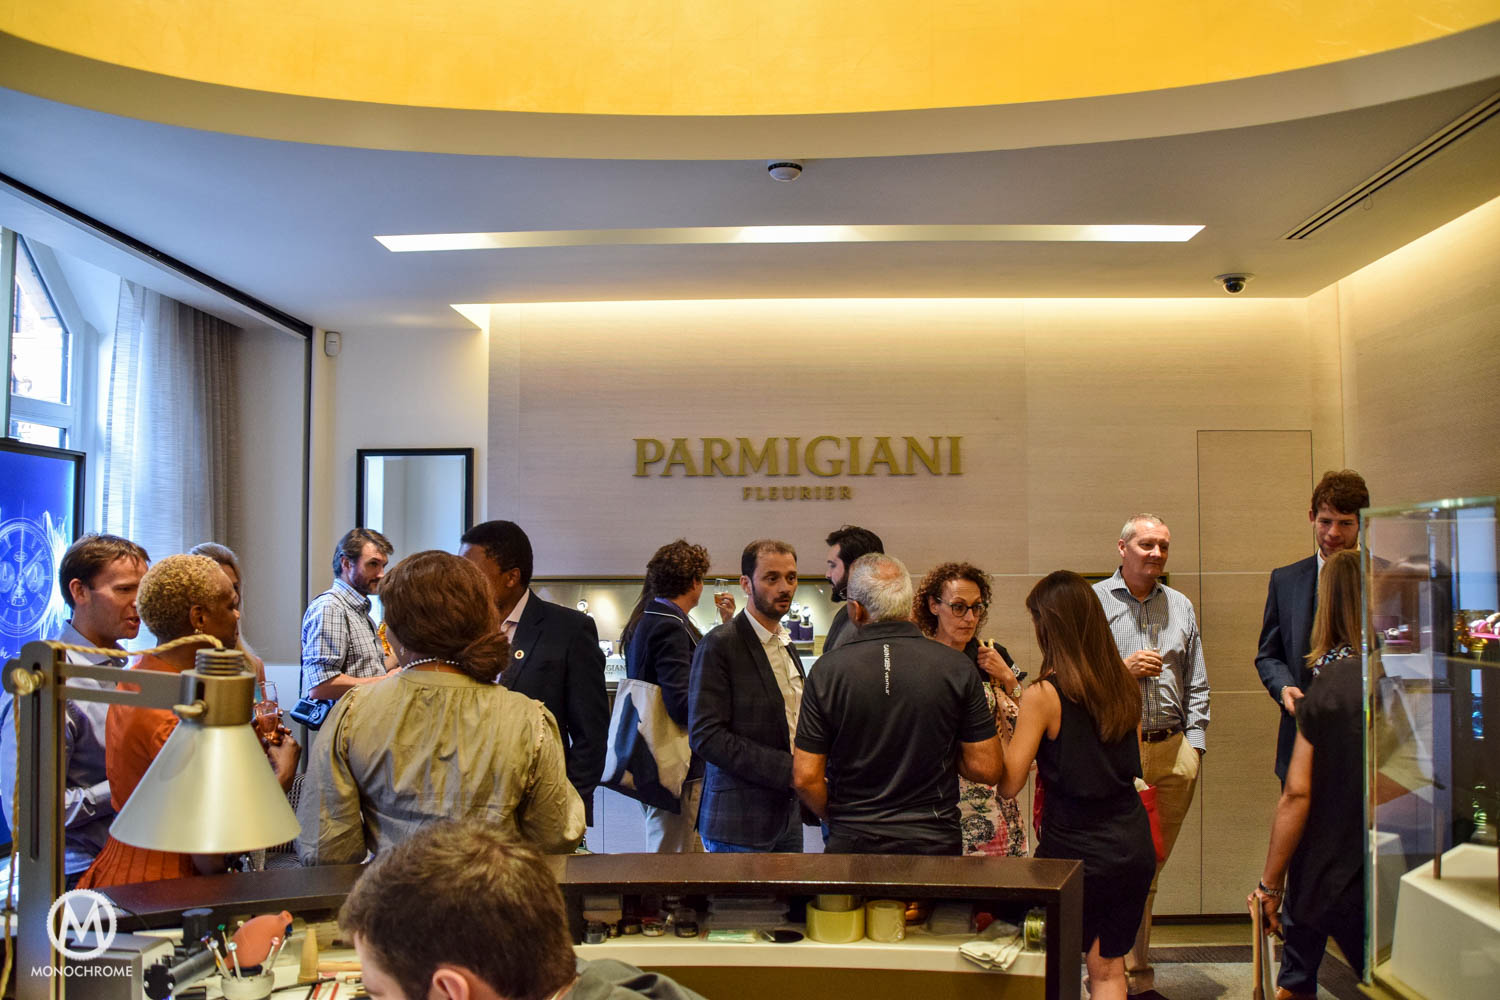 parmigiani-boutique-event-0766